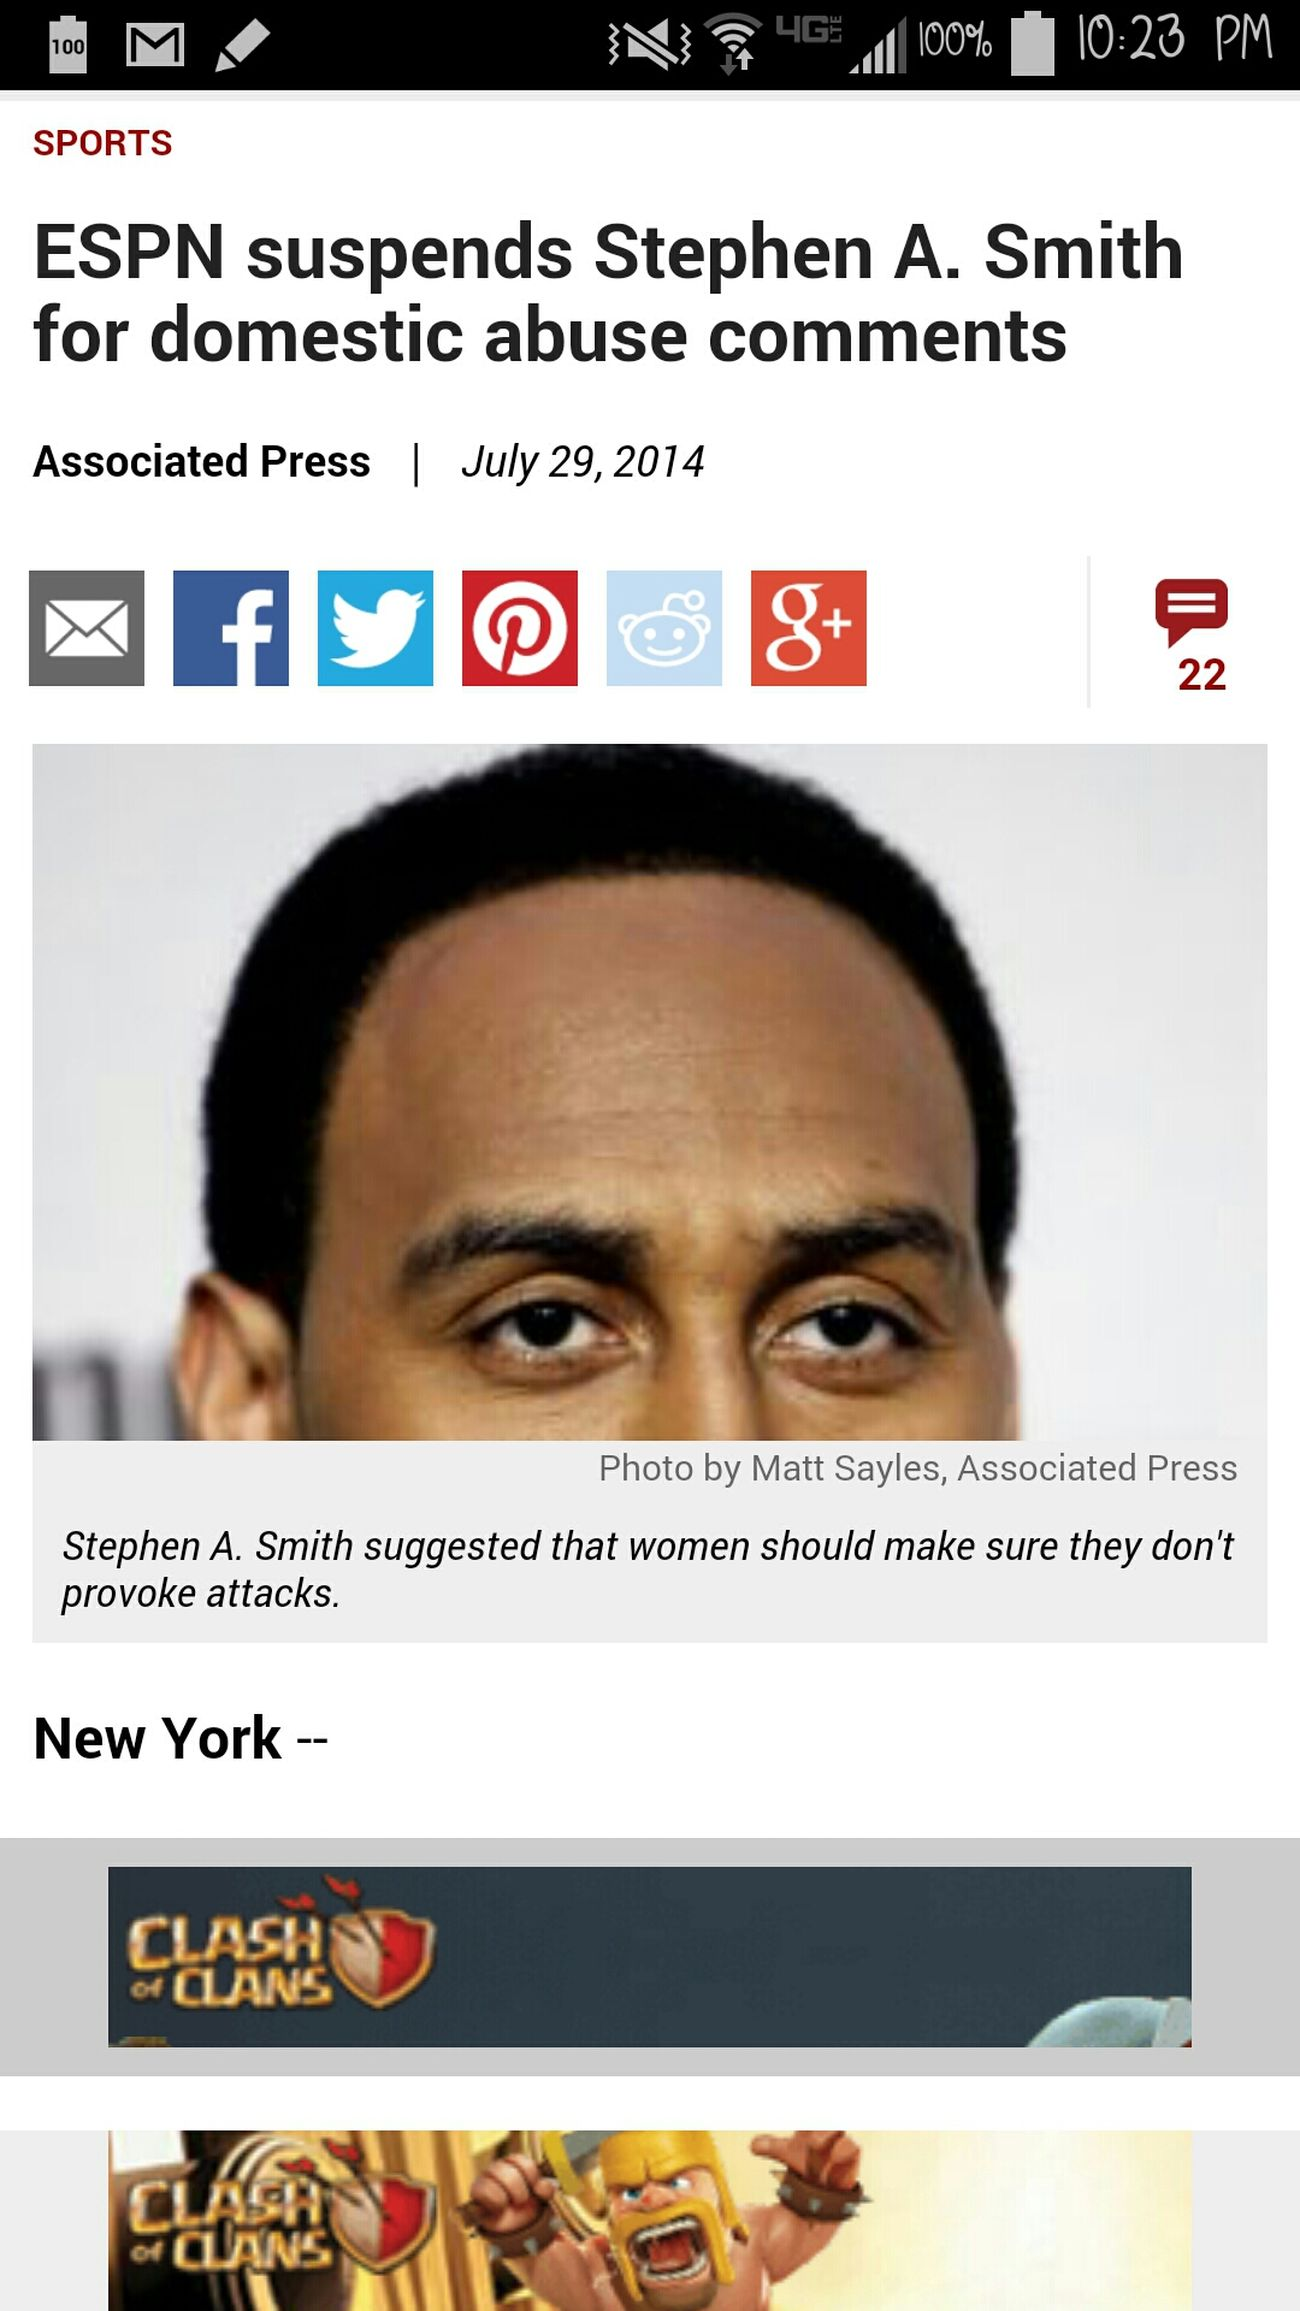 Stephen A. Smith Controversy Beating  ESPN if I was stephen A Smith I would sue you for defamation of character. The man is telling the truth if a woman sit there and deliberately provoke an attack she deserves the repercussions. He wasn't saying all women need to be hit or some kind of different version of that. ESPN acting like this man said he condone women/spouse beating he was just saying women shouldn't provoke an assualt. That's an ass move ESPN I don't really agree with this decision how can you spin his comment any way negative?